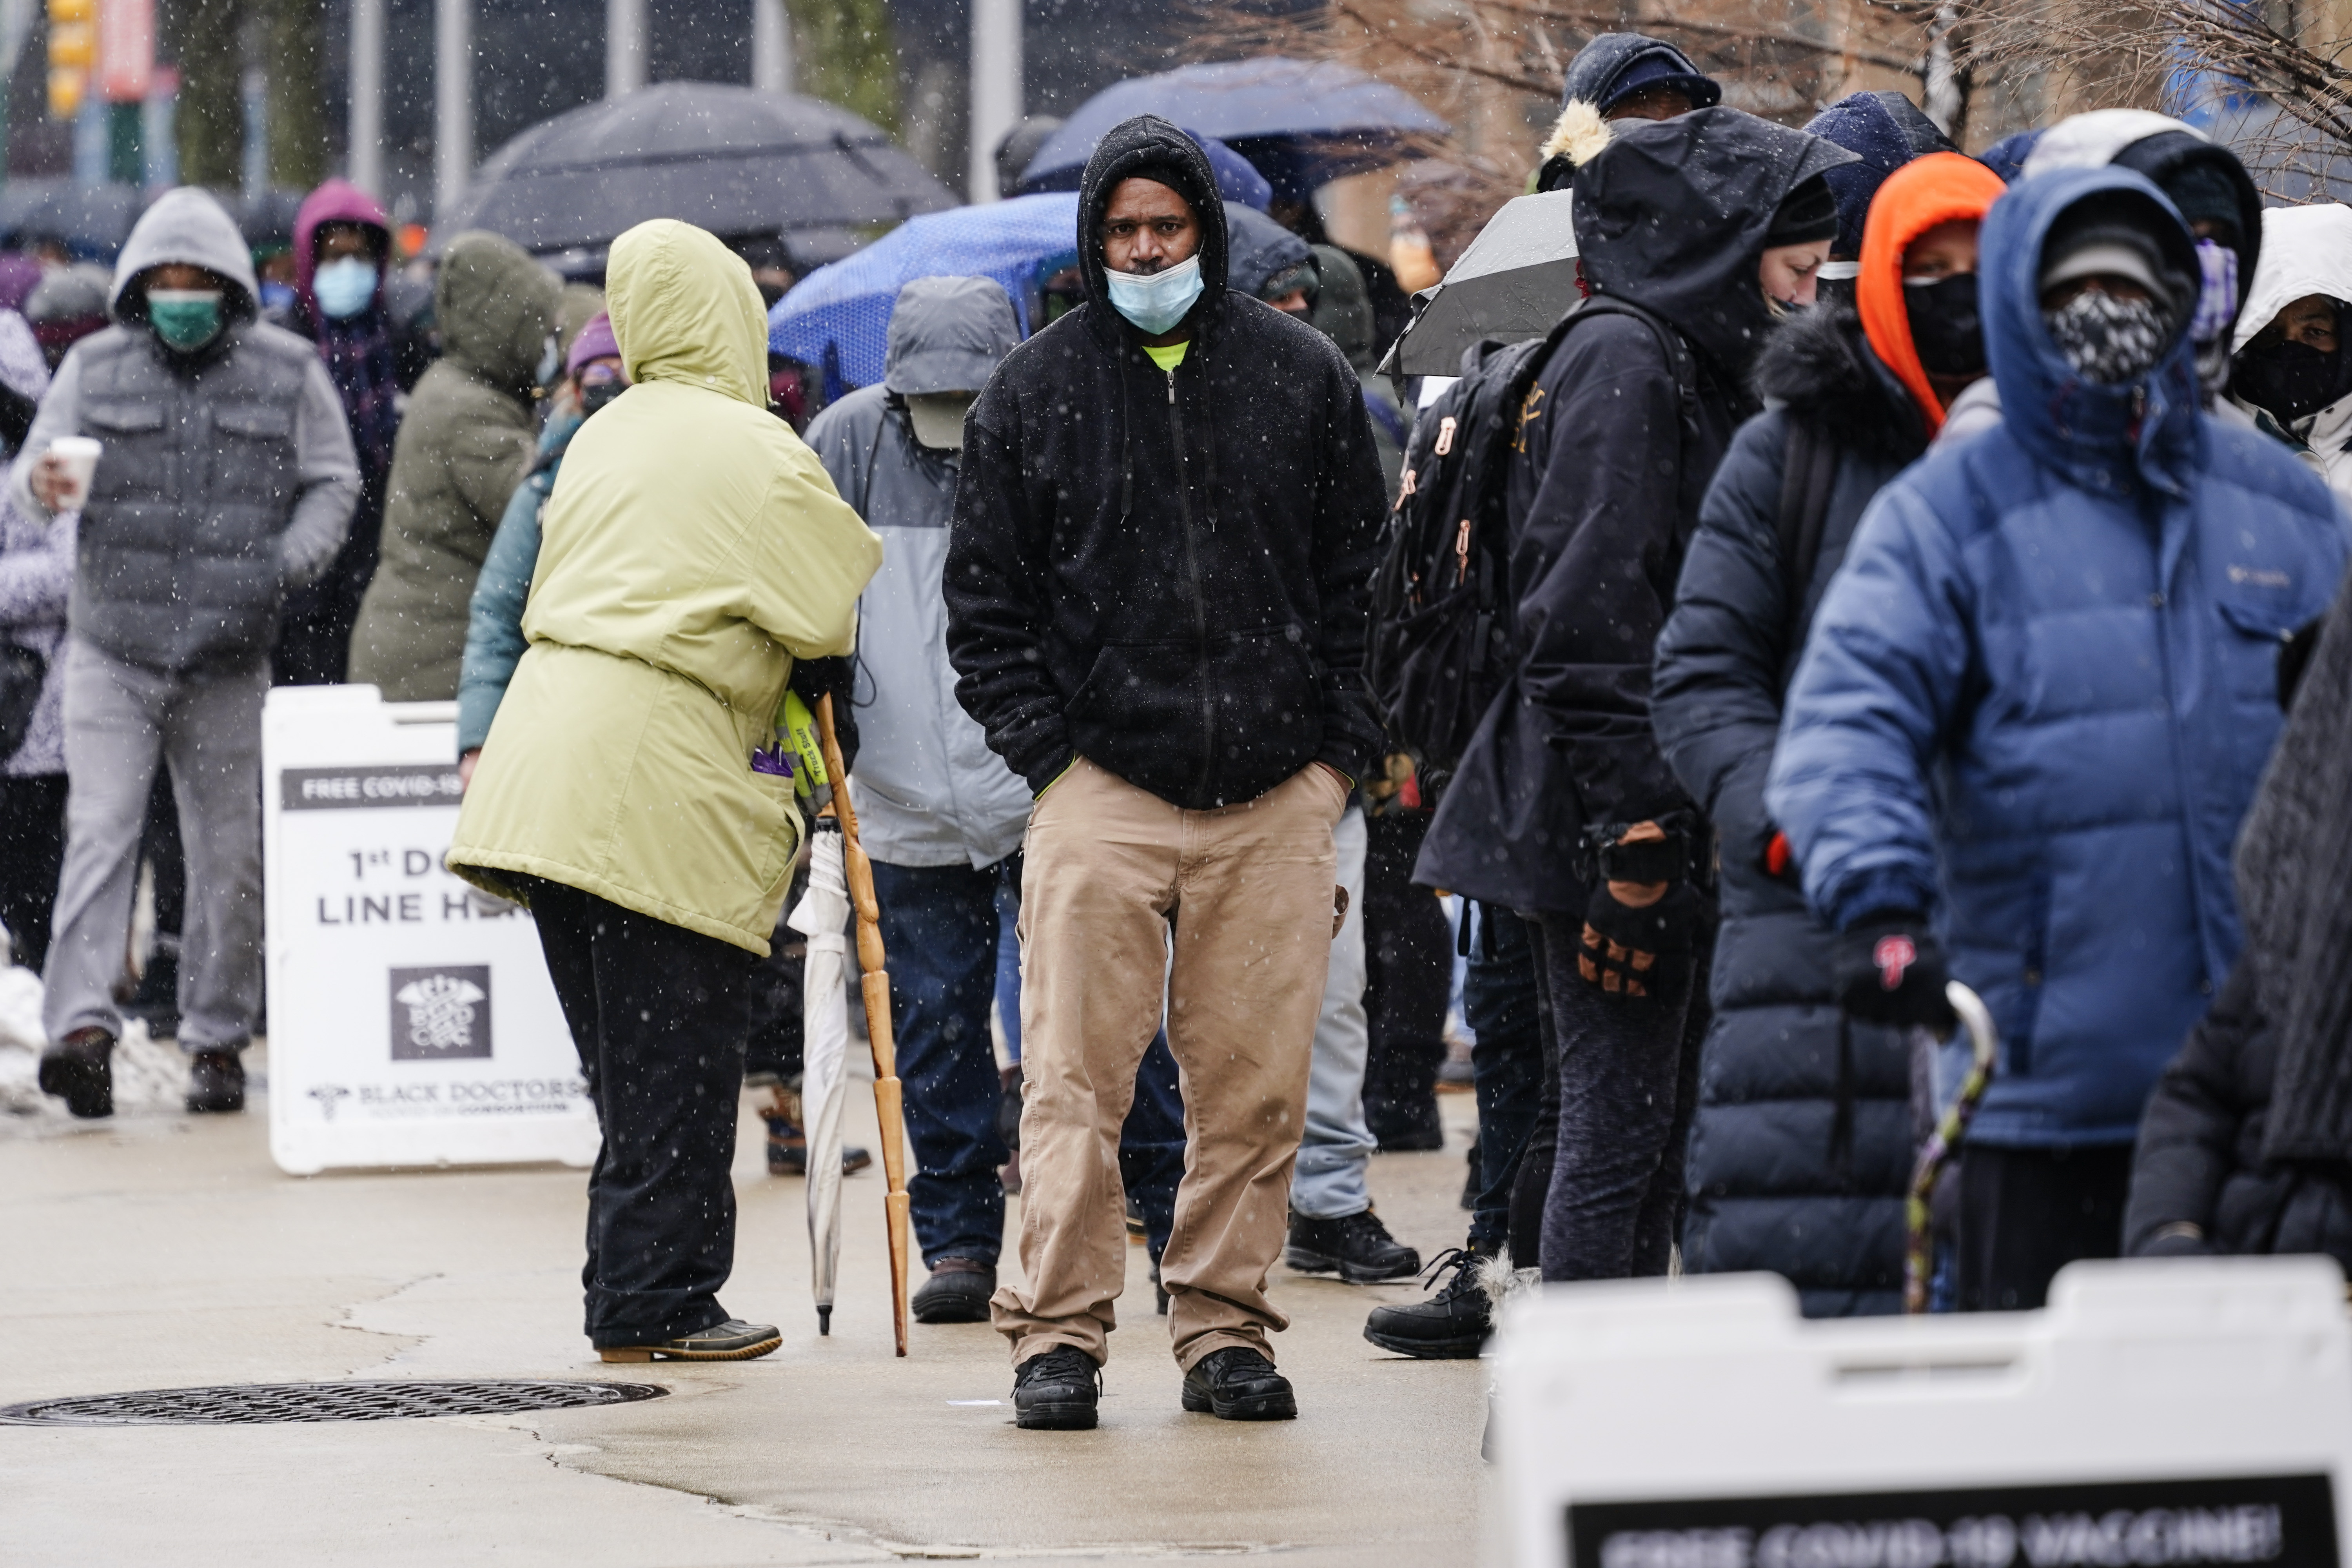 In this Feb. 19, 2021, file photo, people wait in line at a 24-hour, walk-up COVID-19 vaccination clinic hosted by the Black Doctors COVID-19 Consortium at Temple University's Liacouras Center in Philadelphia.